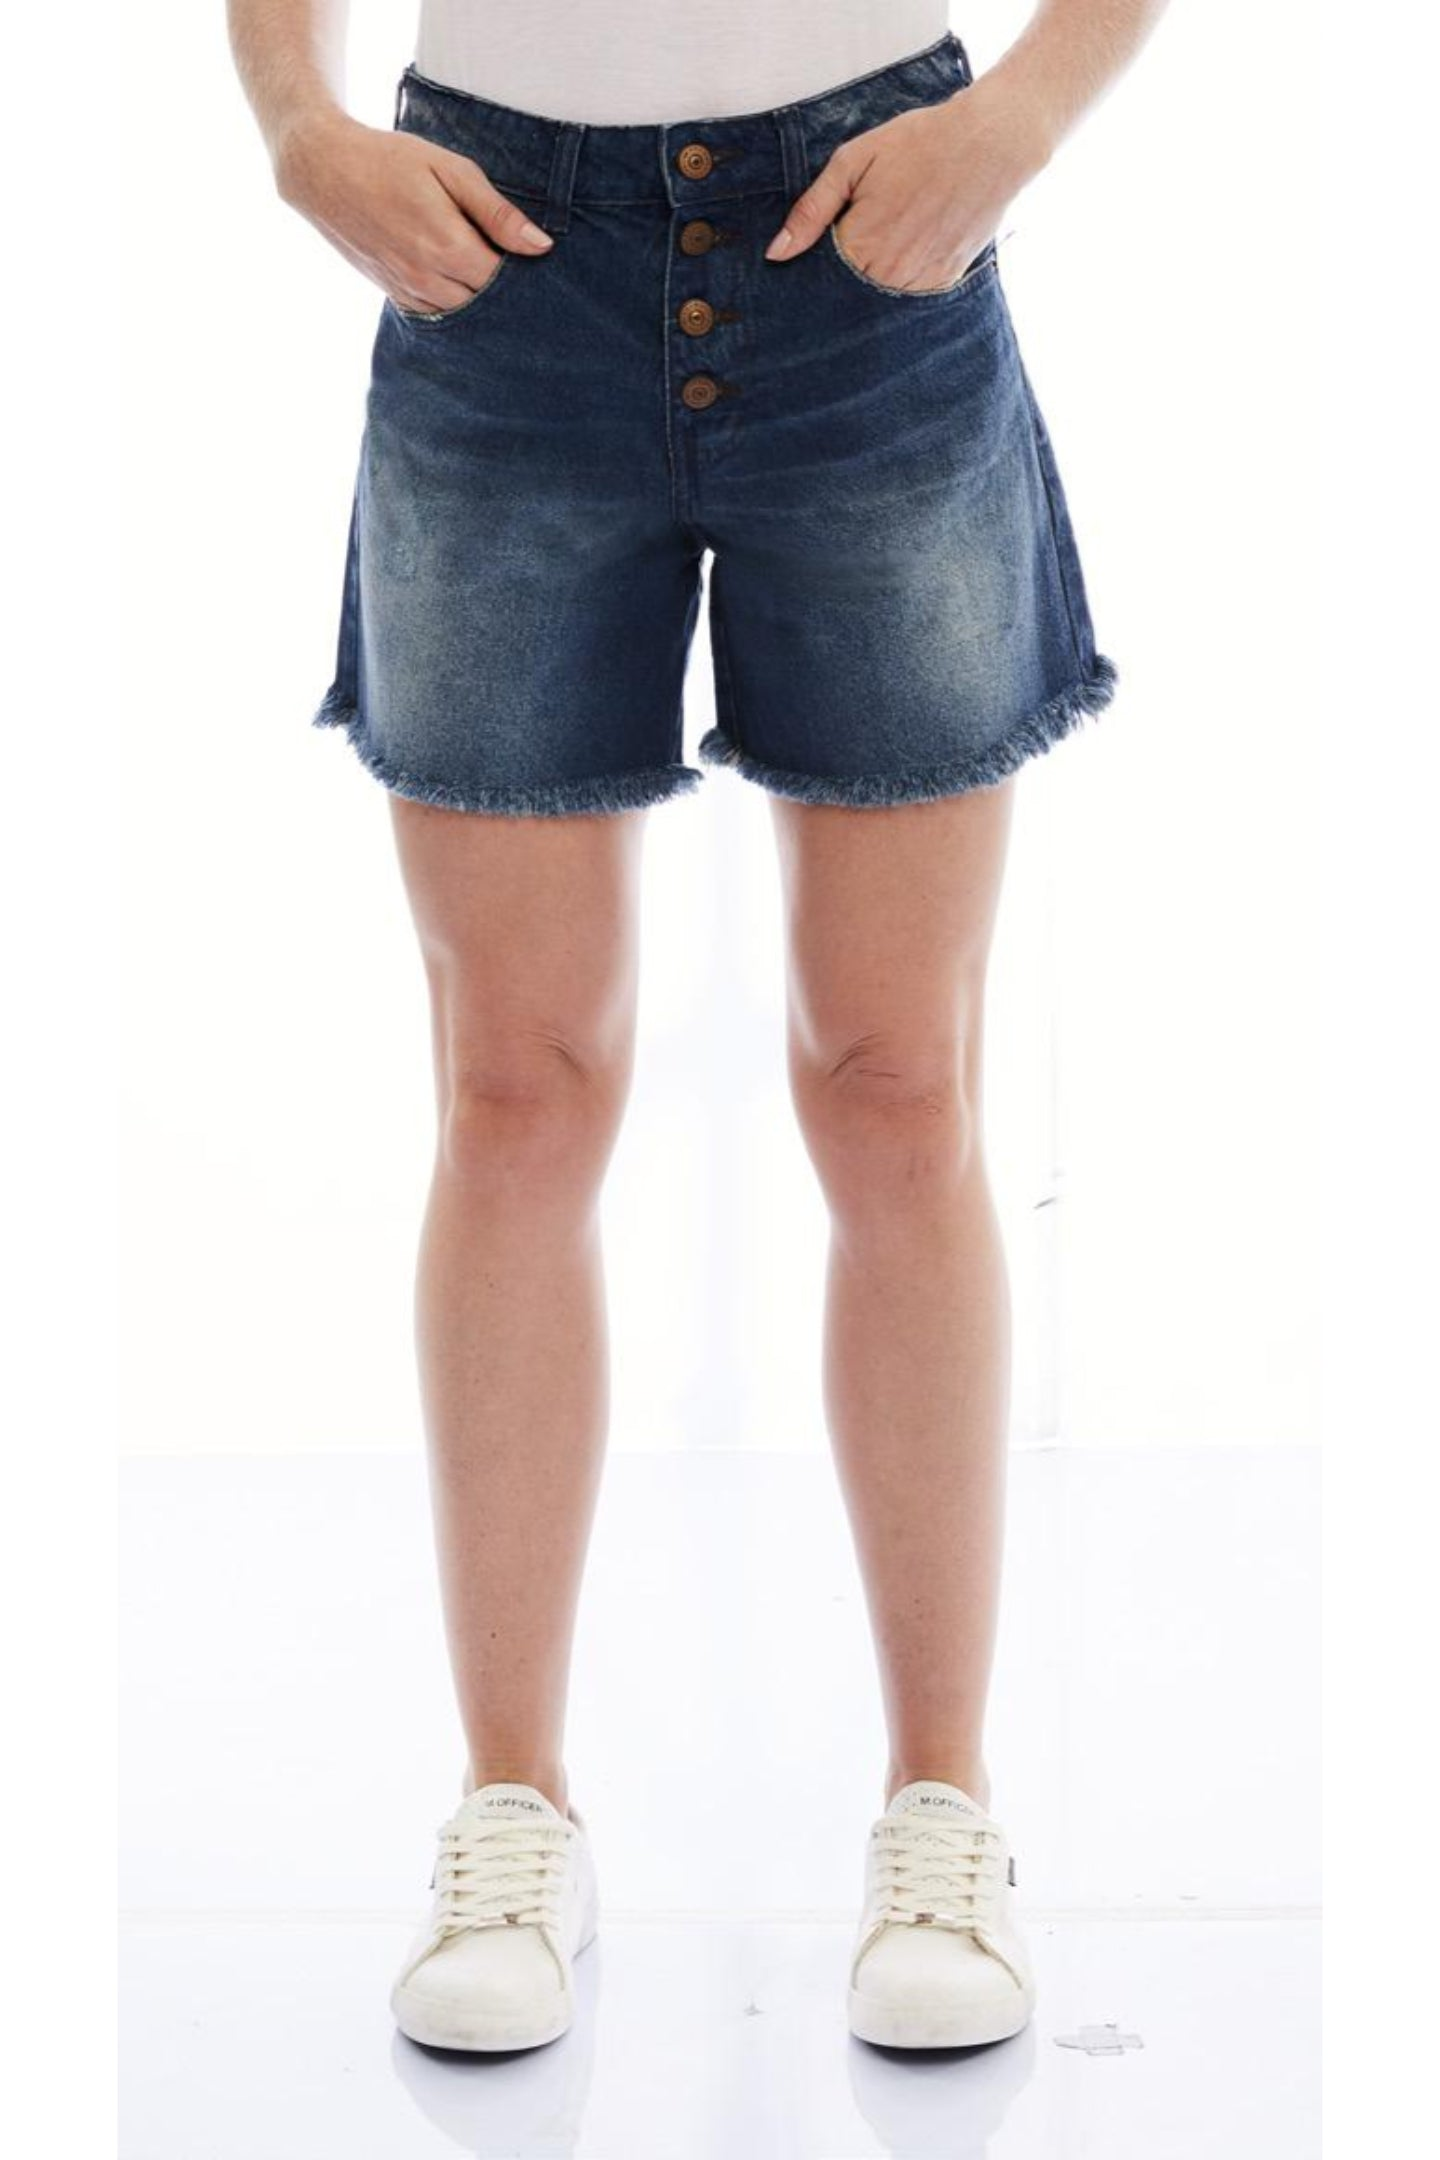 SHORTS JEANS DARK BLUE BOTÕES C4